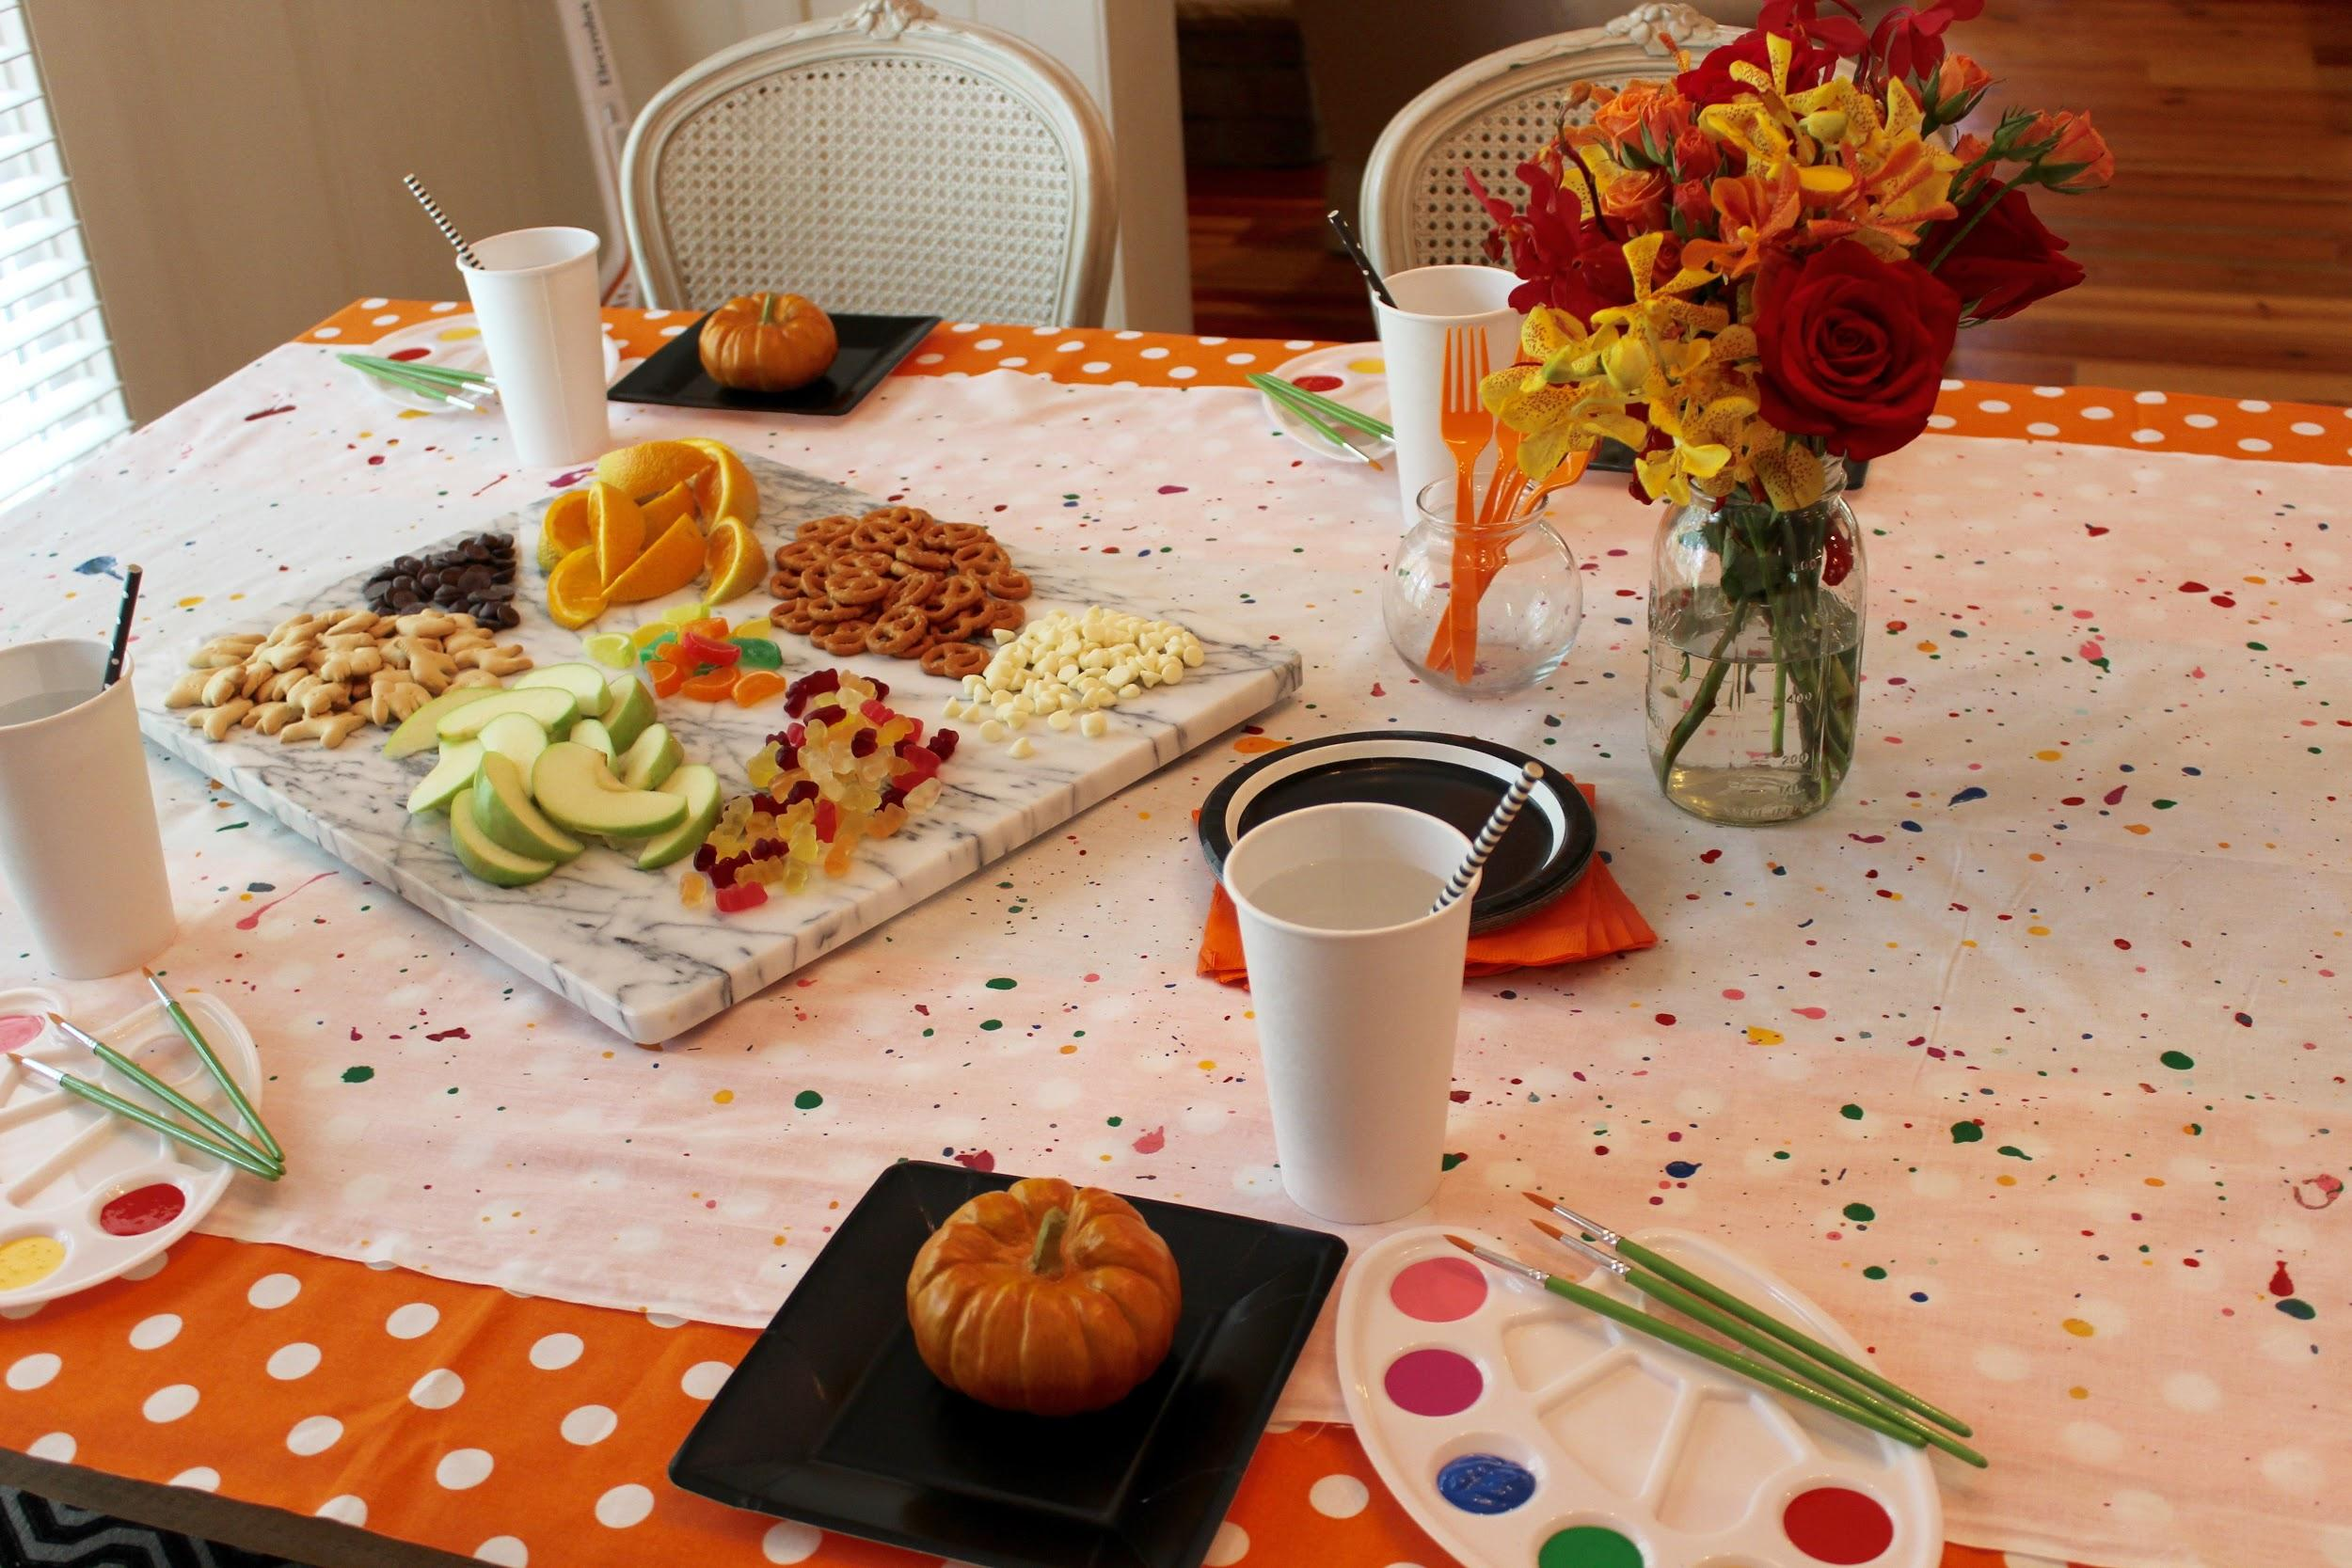 autumn party food and flowers on a table with paint 2